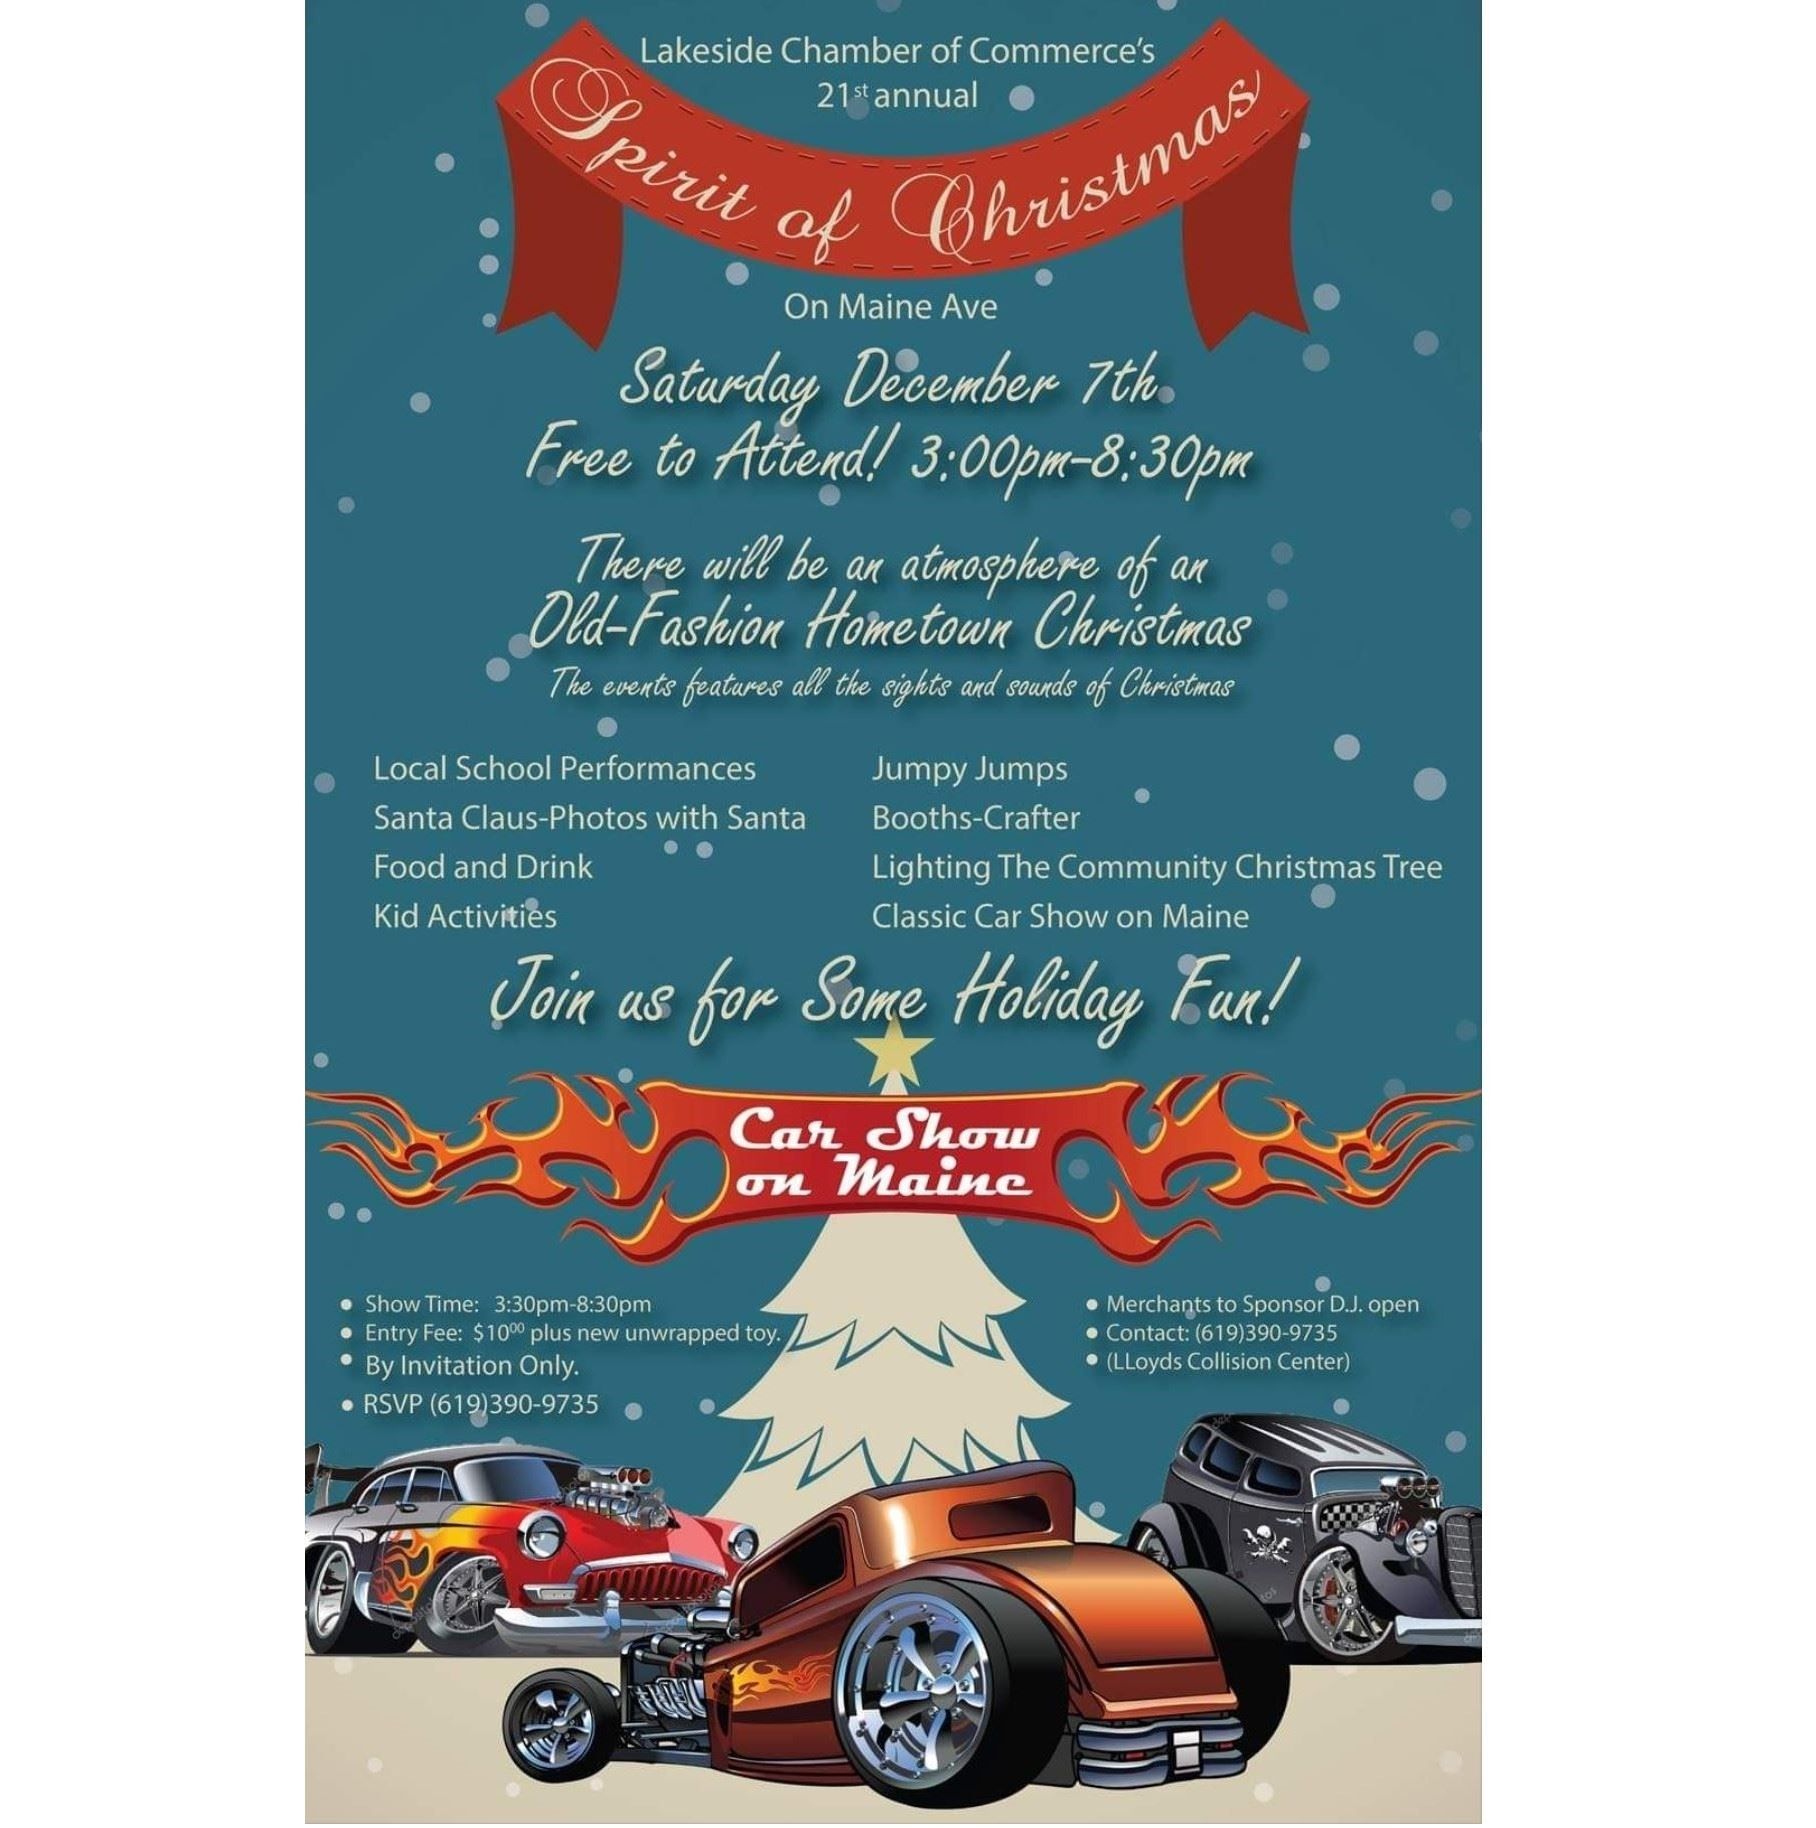 Dec 7th Spirit of Christmas on Maine Ave in Lakeside, CA